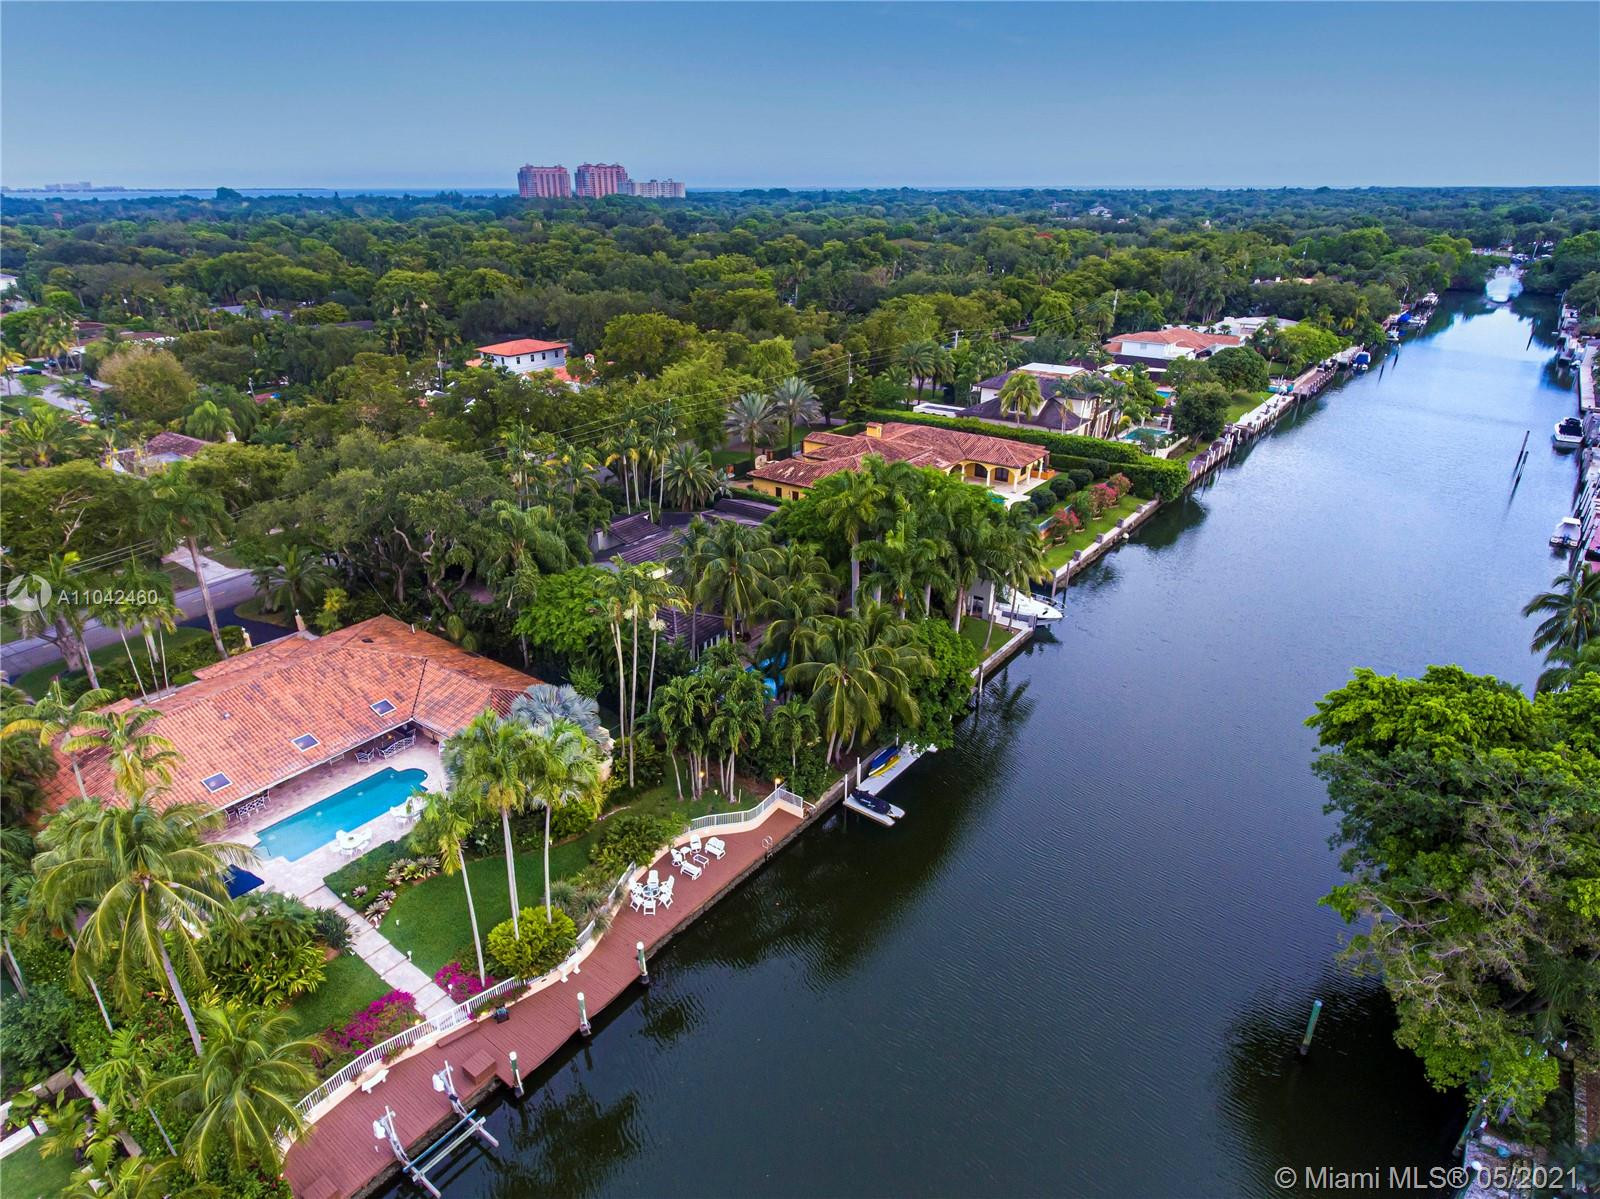 Spectacular WATERFRONT home with an address to match, on the most sought after Riviera Drive, Coral Gables waterway, East of US-1. 5-bedrooms, 4Baths, this well maintained home has a large pool, covered patio, impact windows and doors, summer kitchen large living areas, hot tub off the master suite. It is walled in, has circular driveway and two car garage. The property is beautifully landscaped, and has a large dock and boat lift on the widest section of the waterway. homes like this, rarely come on the market, as those who buy on the Riviera waterway usually stay for decades as is the case with this home. The Coral Gables waterway has two 18 ft + bridges to the bay and is one of the best hurricane harbors in South Florida. This is a unique opportunity.